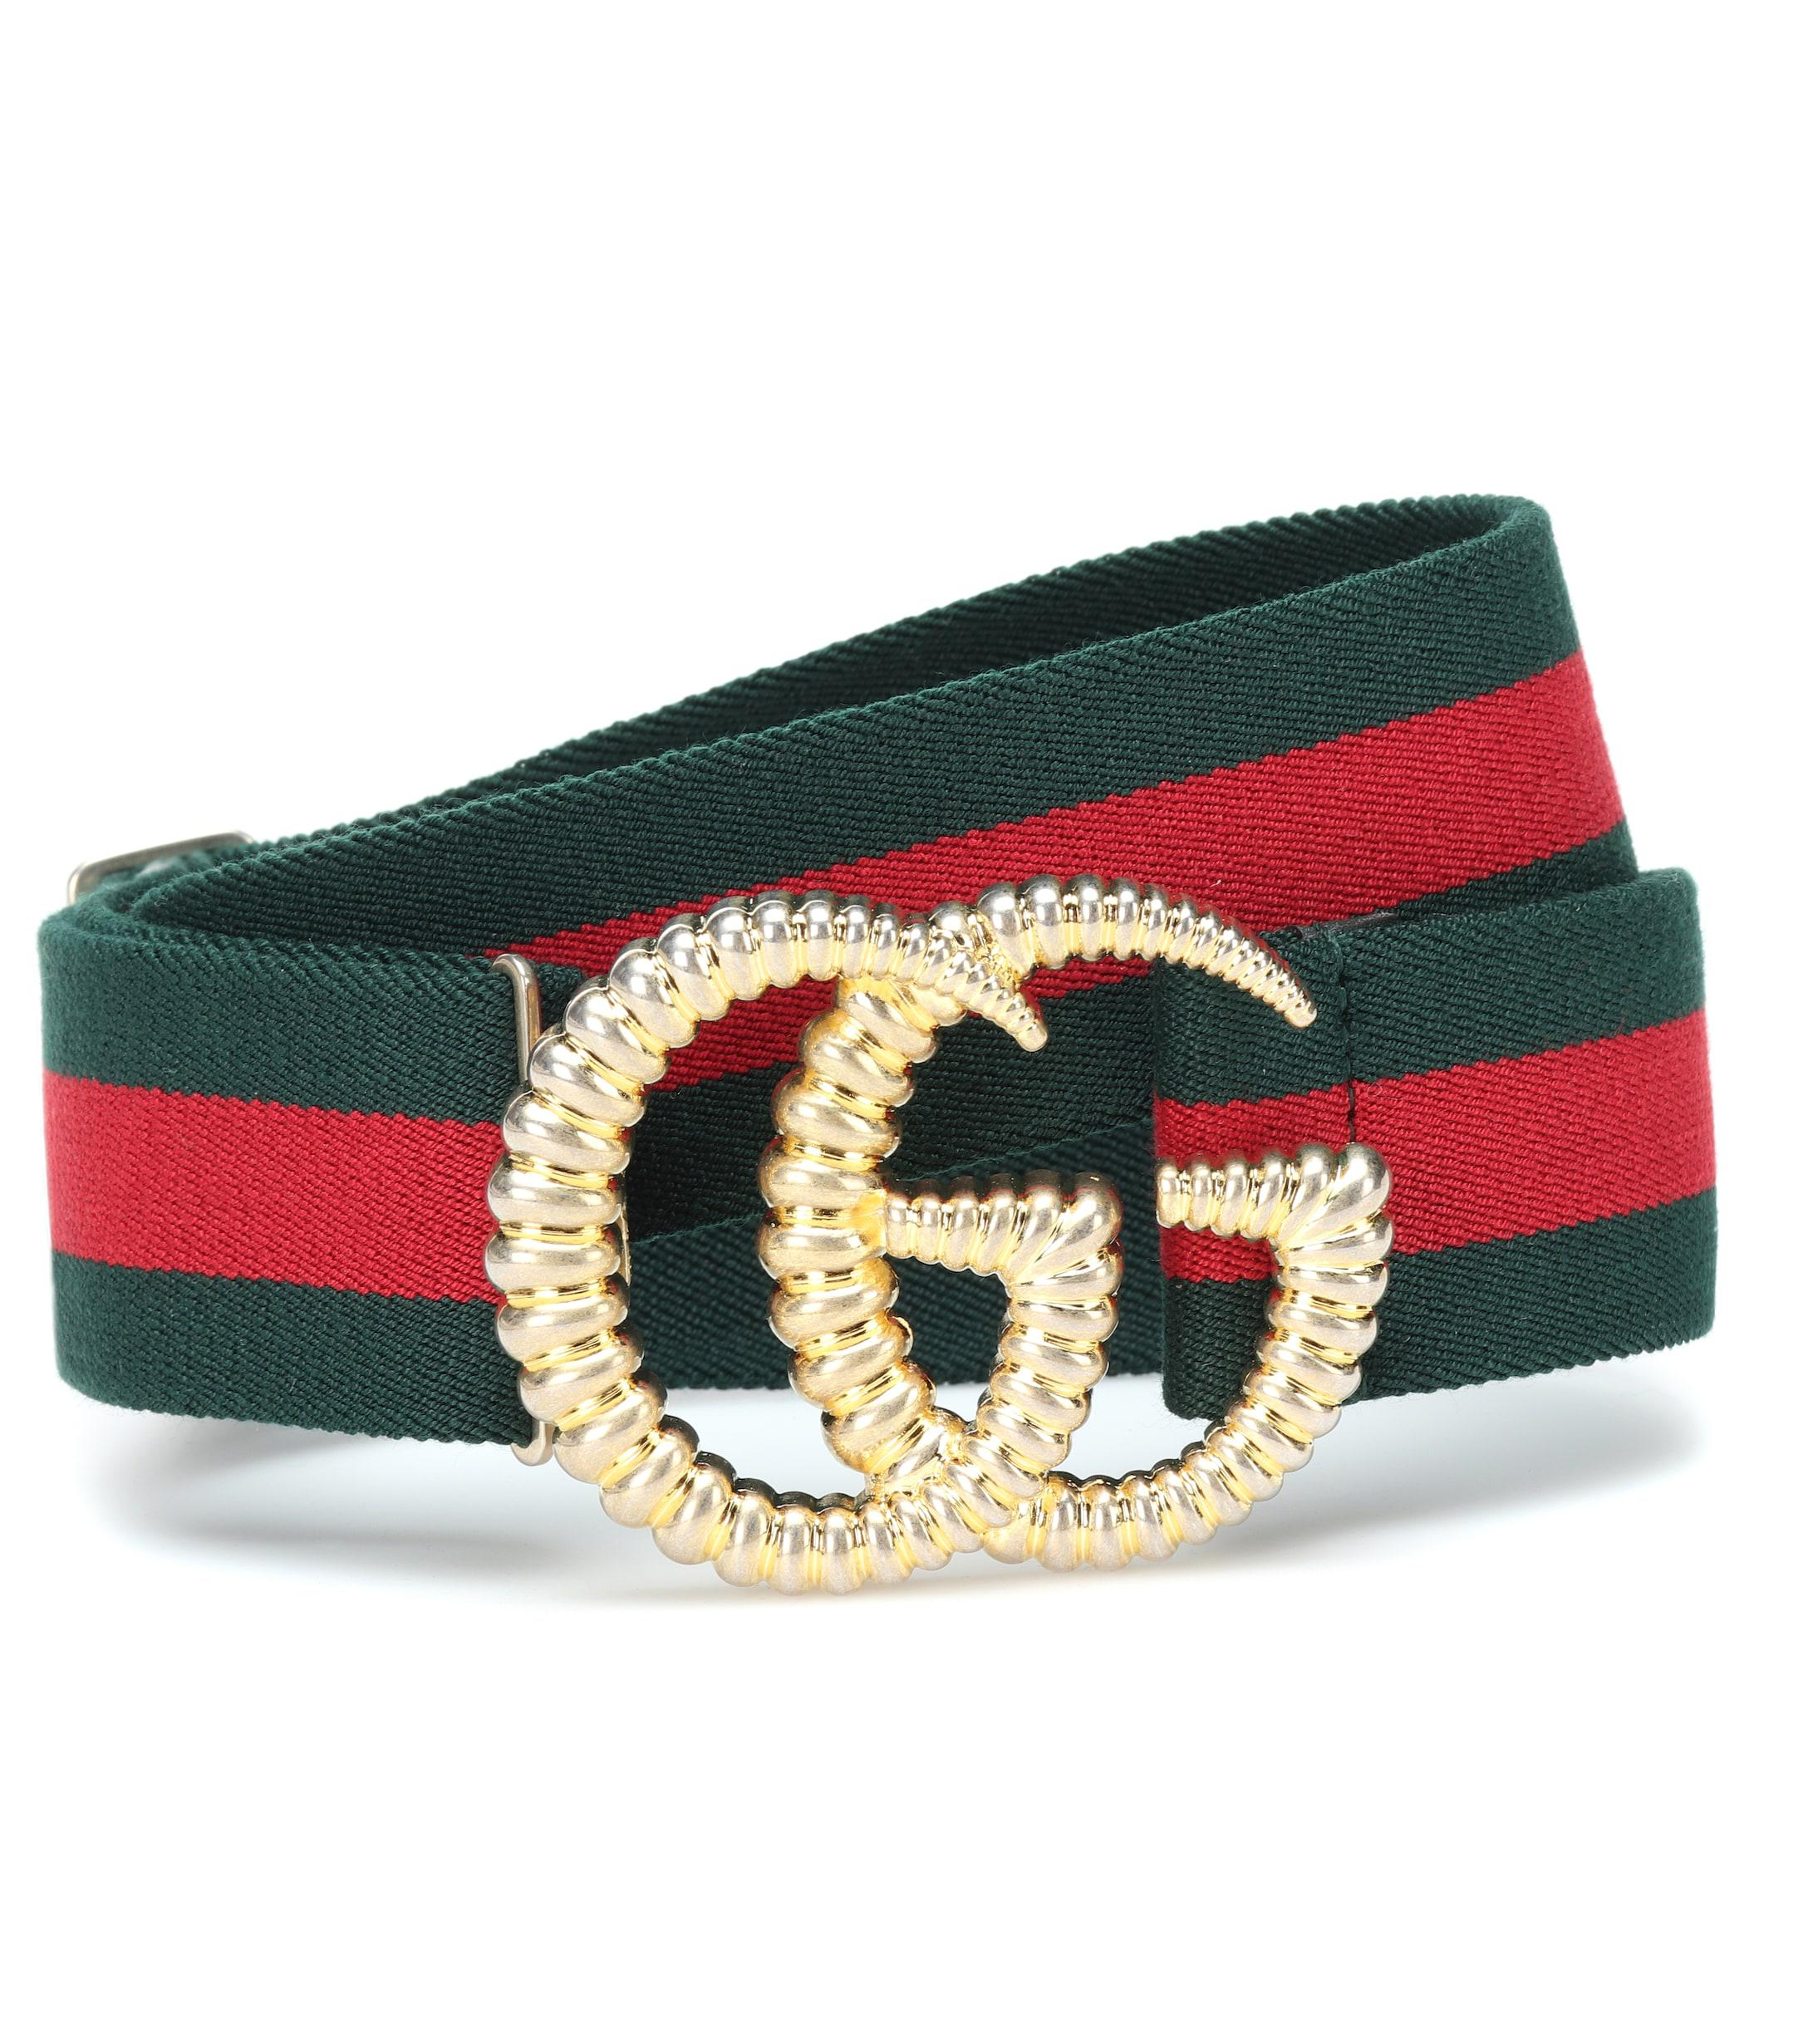 493be20fb92 Gucci - Multicolor GG Striped Web Belt - Lyst. View fullscreen